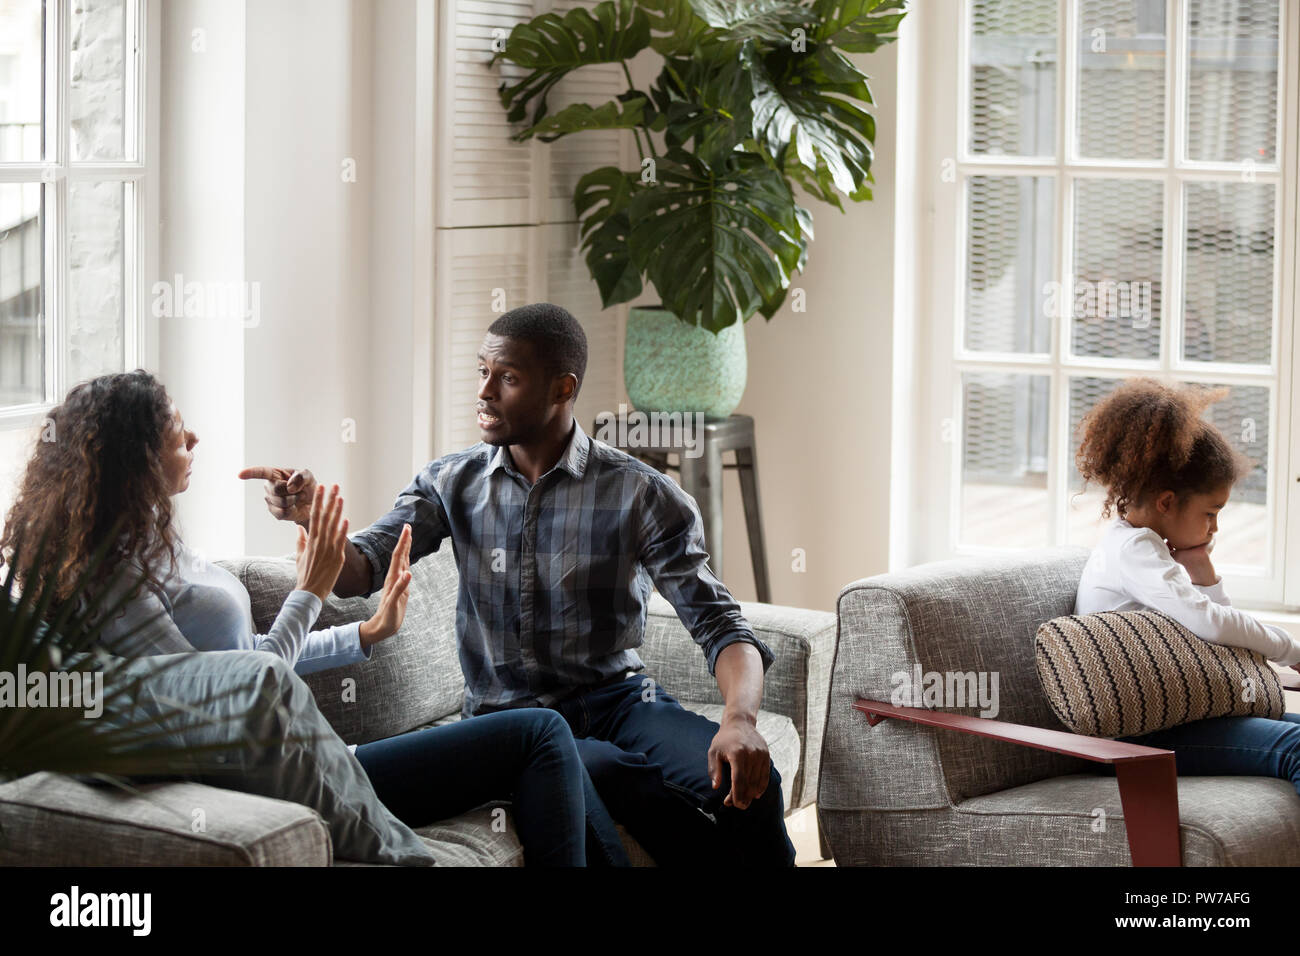 Unhappy family with kid quarrelling at home - Stock Image